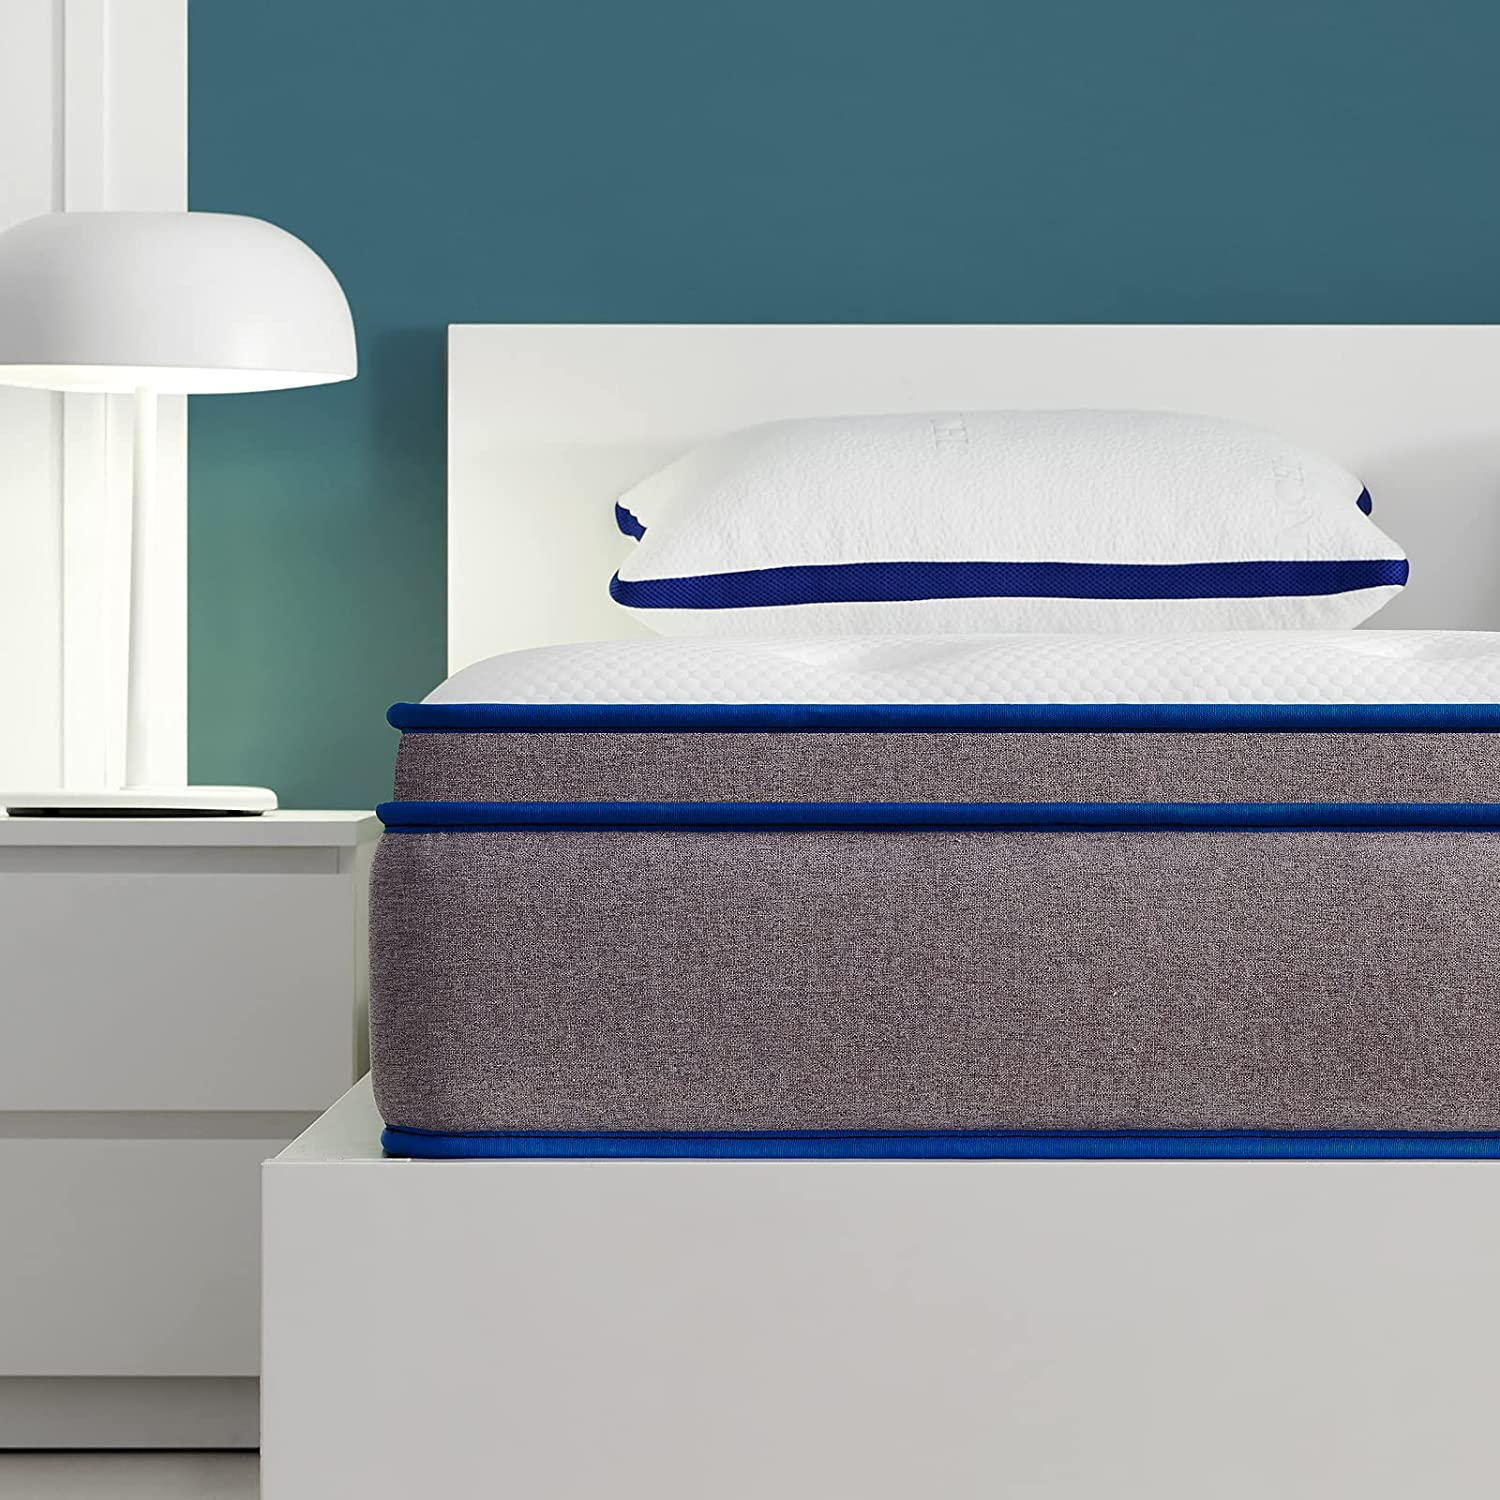 Full Mattress IYEE NATURE 12 Wrapped Individually quality assurance In inch 4 years warranty Coils